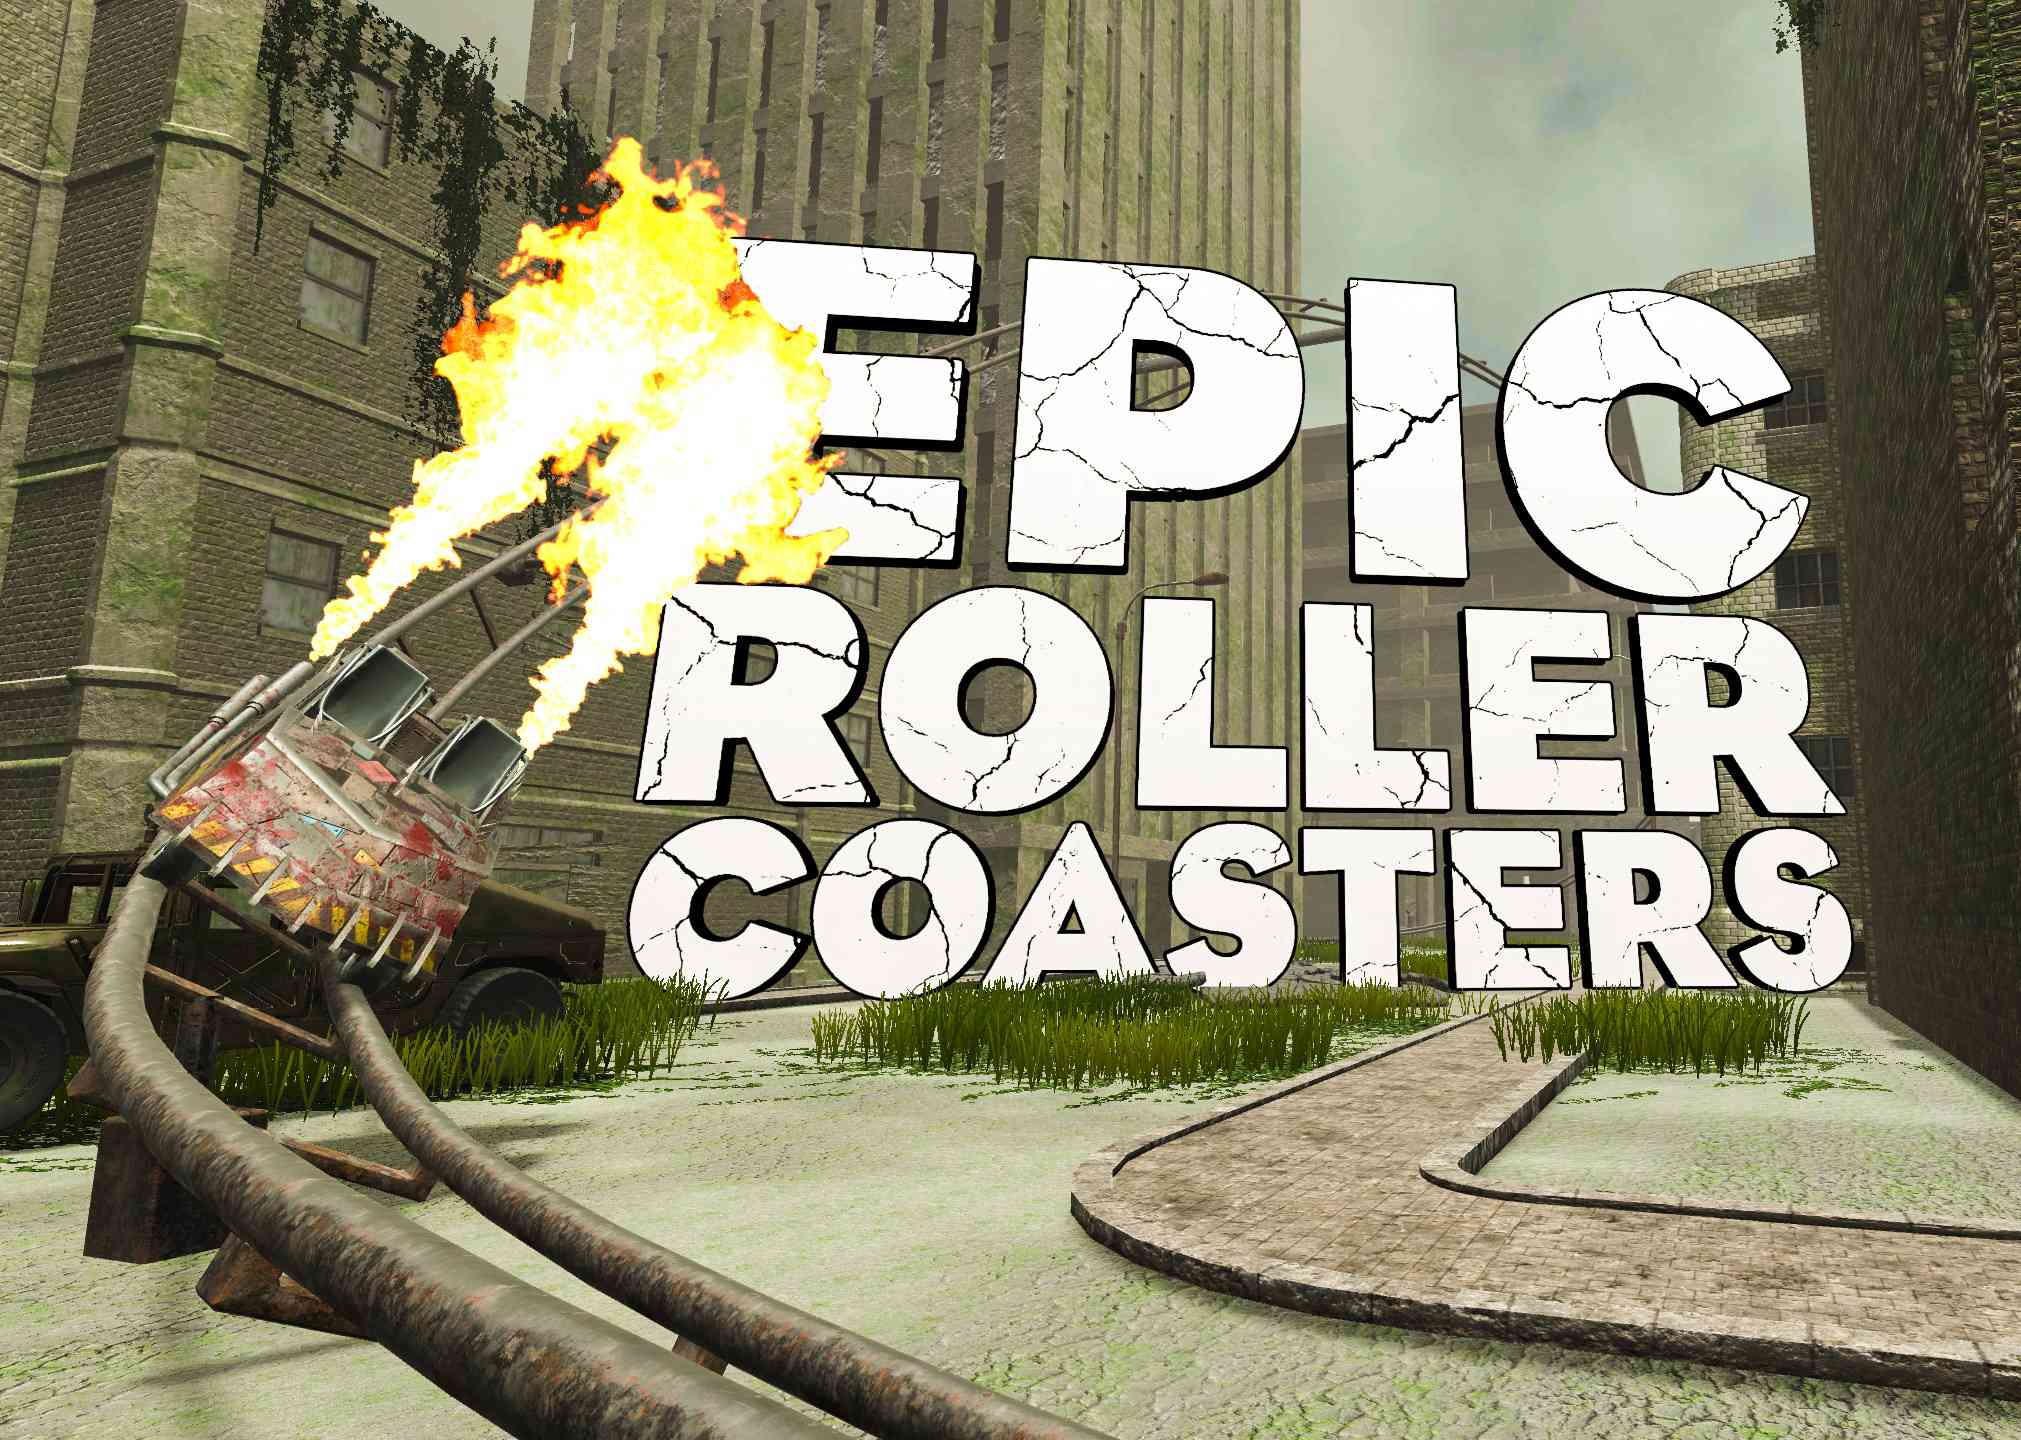 Epic Roller Coasters VR game